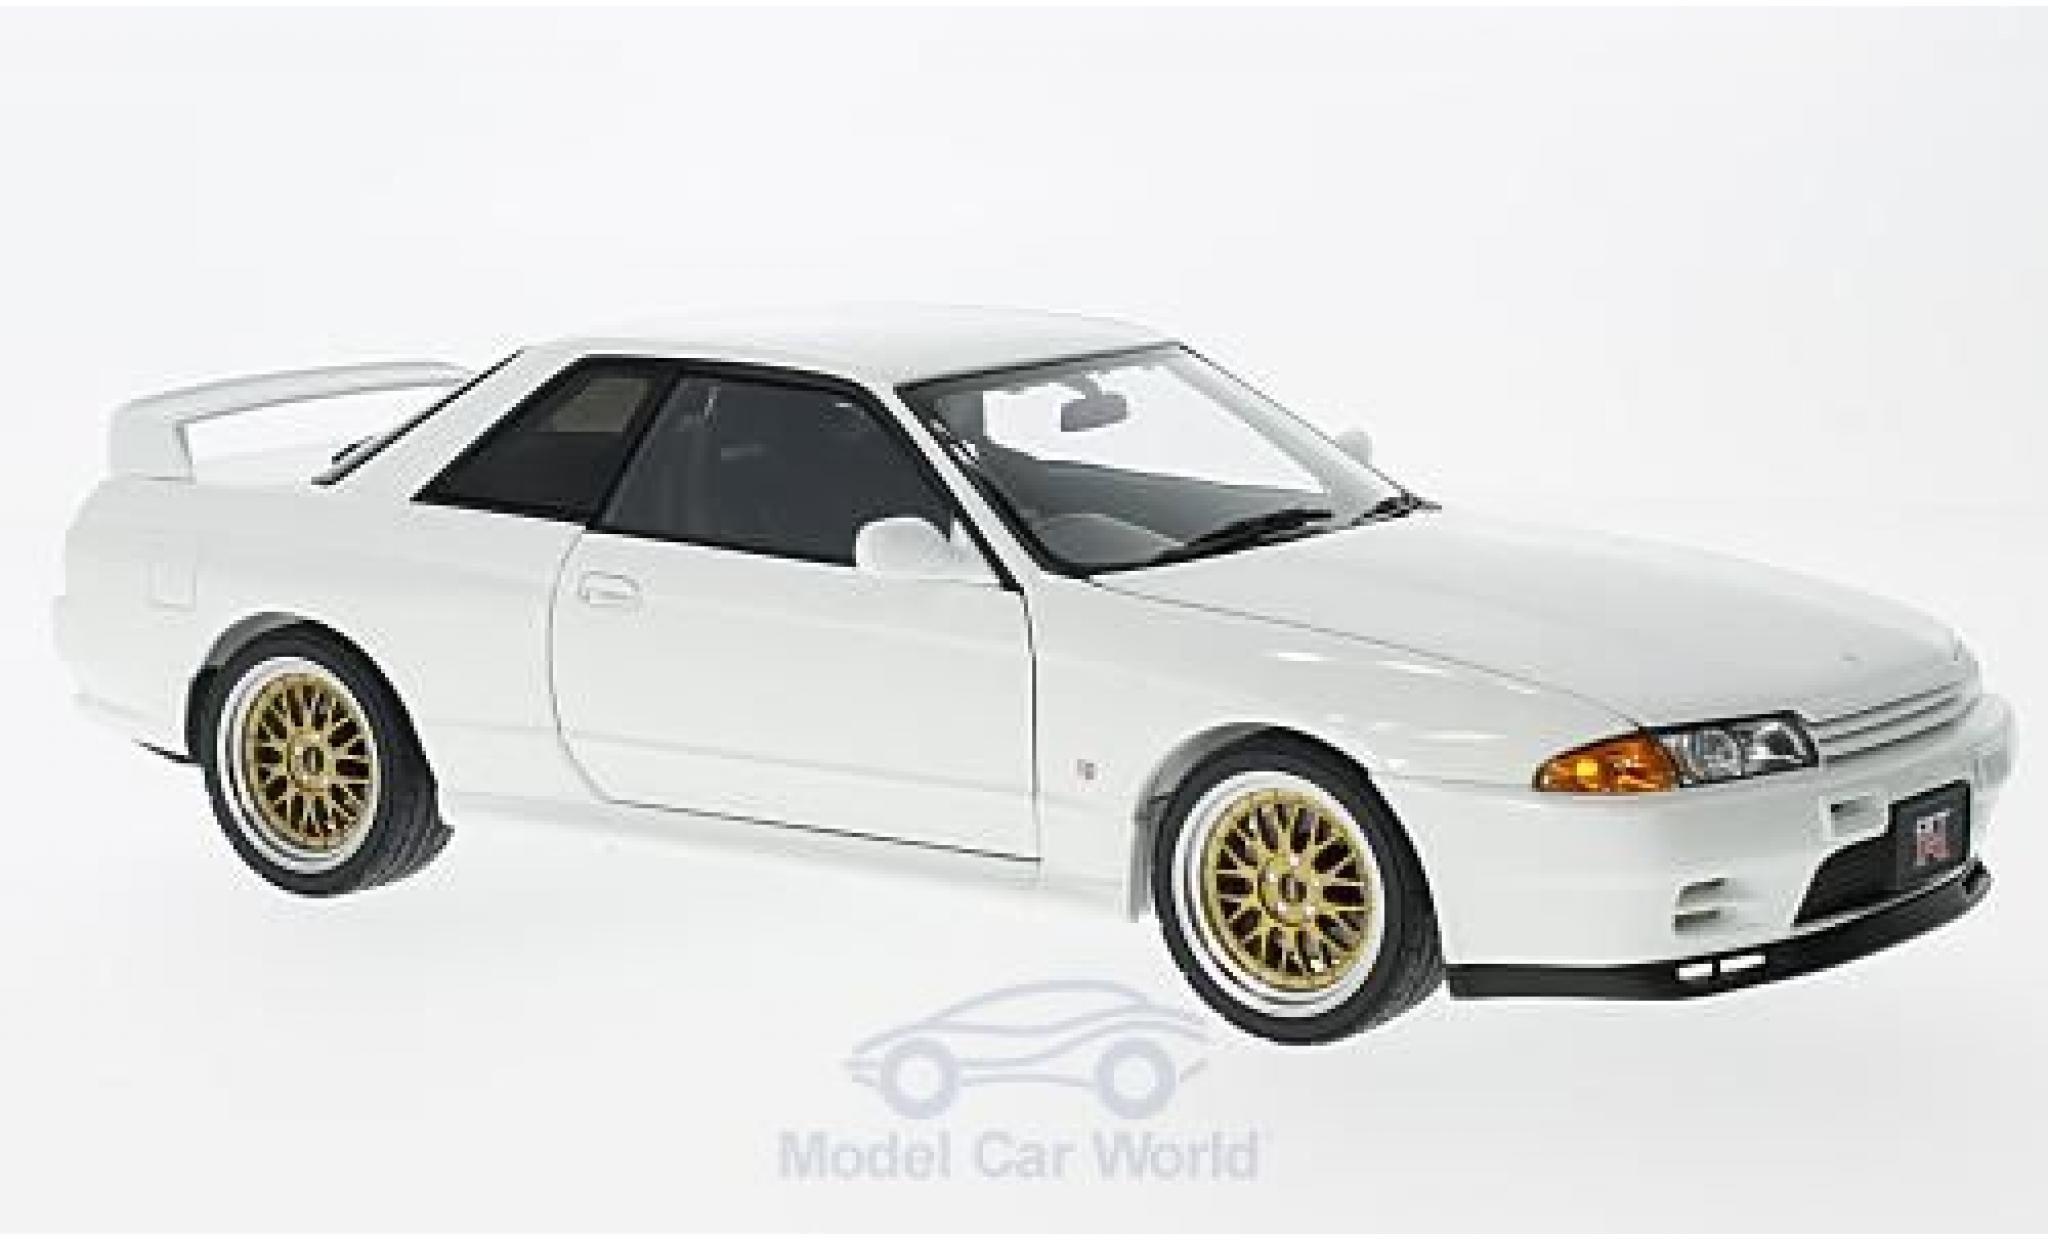 Nissan Skyline 1/18 AUTOart GT-R (R32) V-Spec II white RHD 1991 Tuned Version